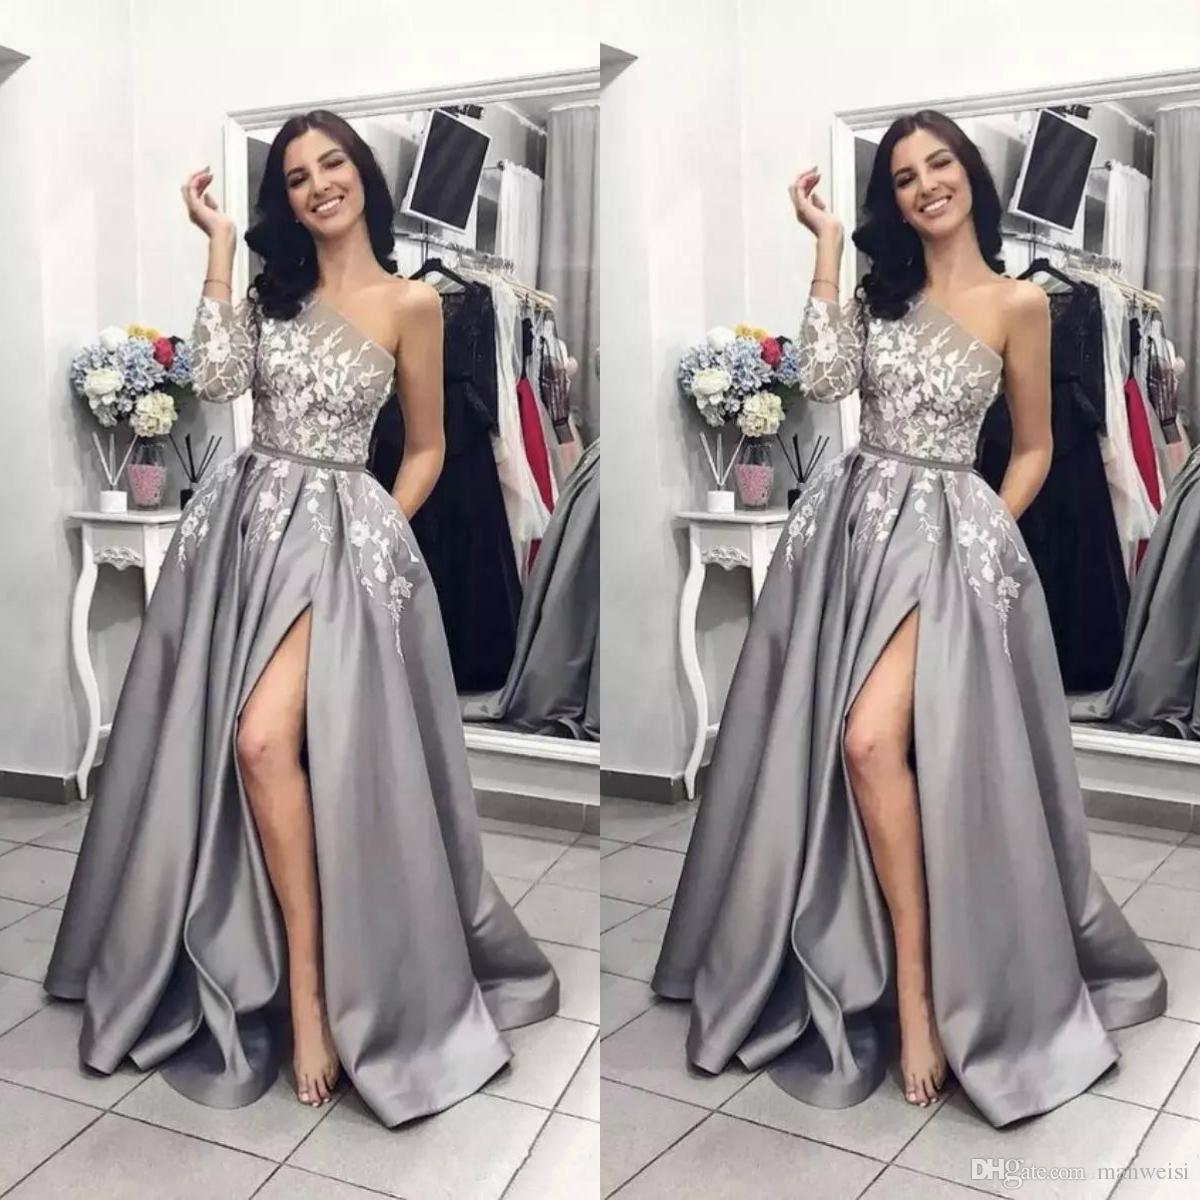 f8d5996ce8a 2019 Silver Grey Slit Prom Dresses One Shoulder Long Sleeve Lace Applique A  Line Women Black Girl Party Evening Wear Pageant Gowns Custom Design A Prom  ...